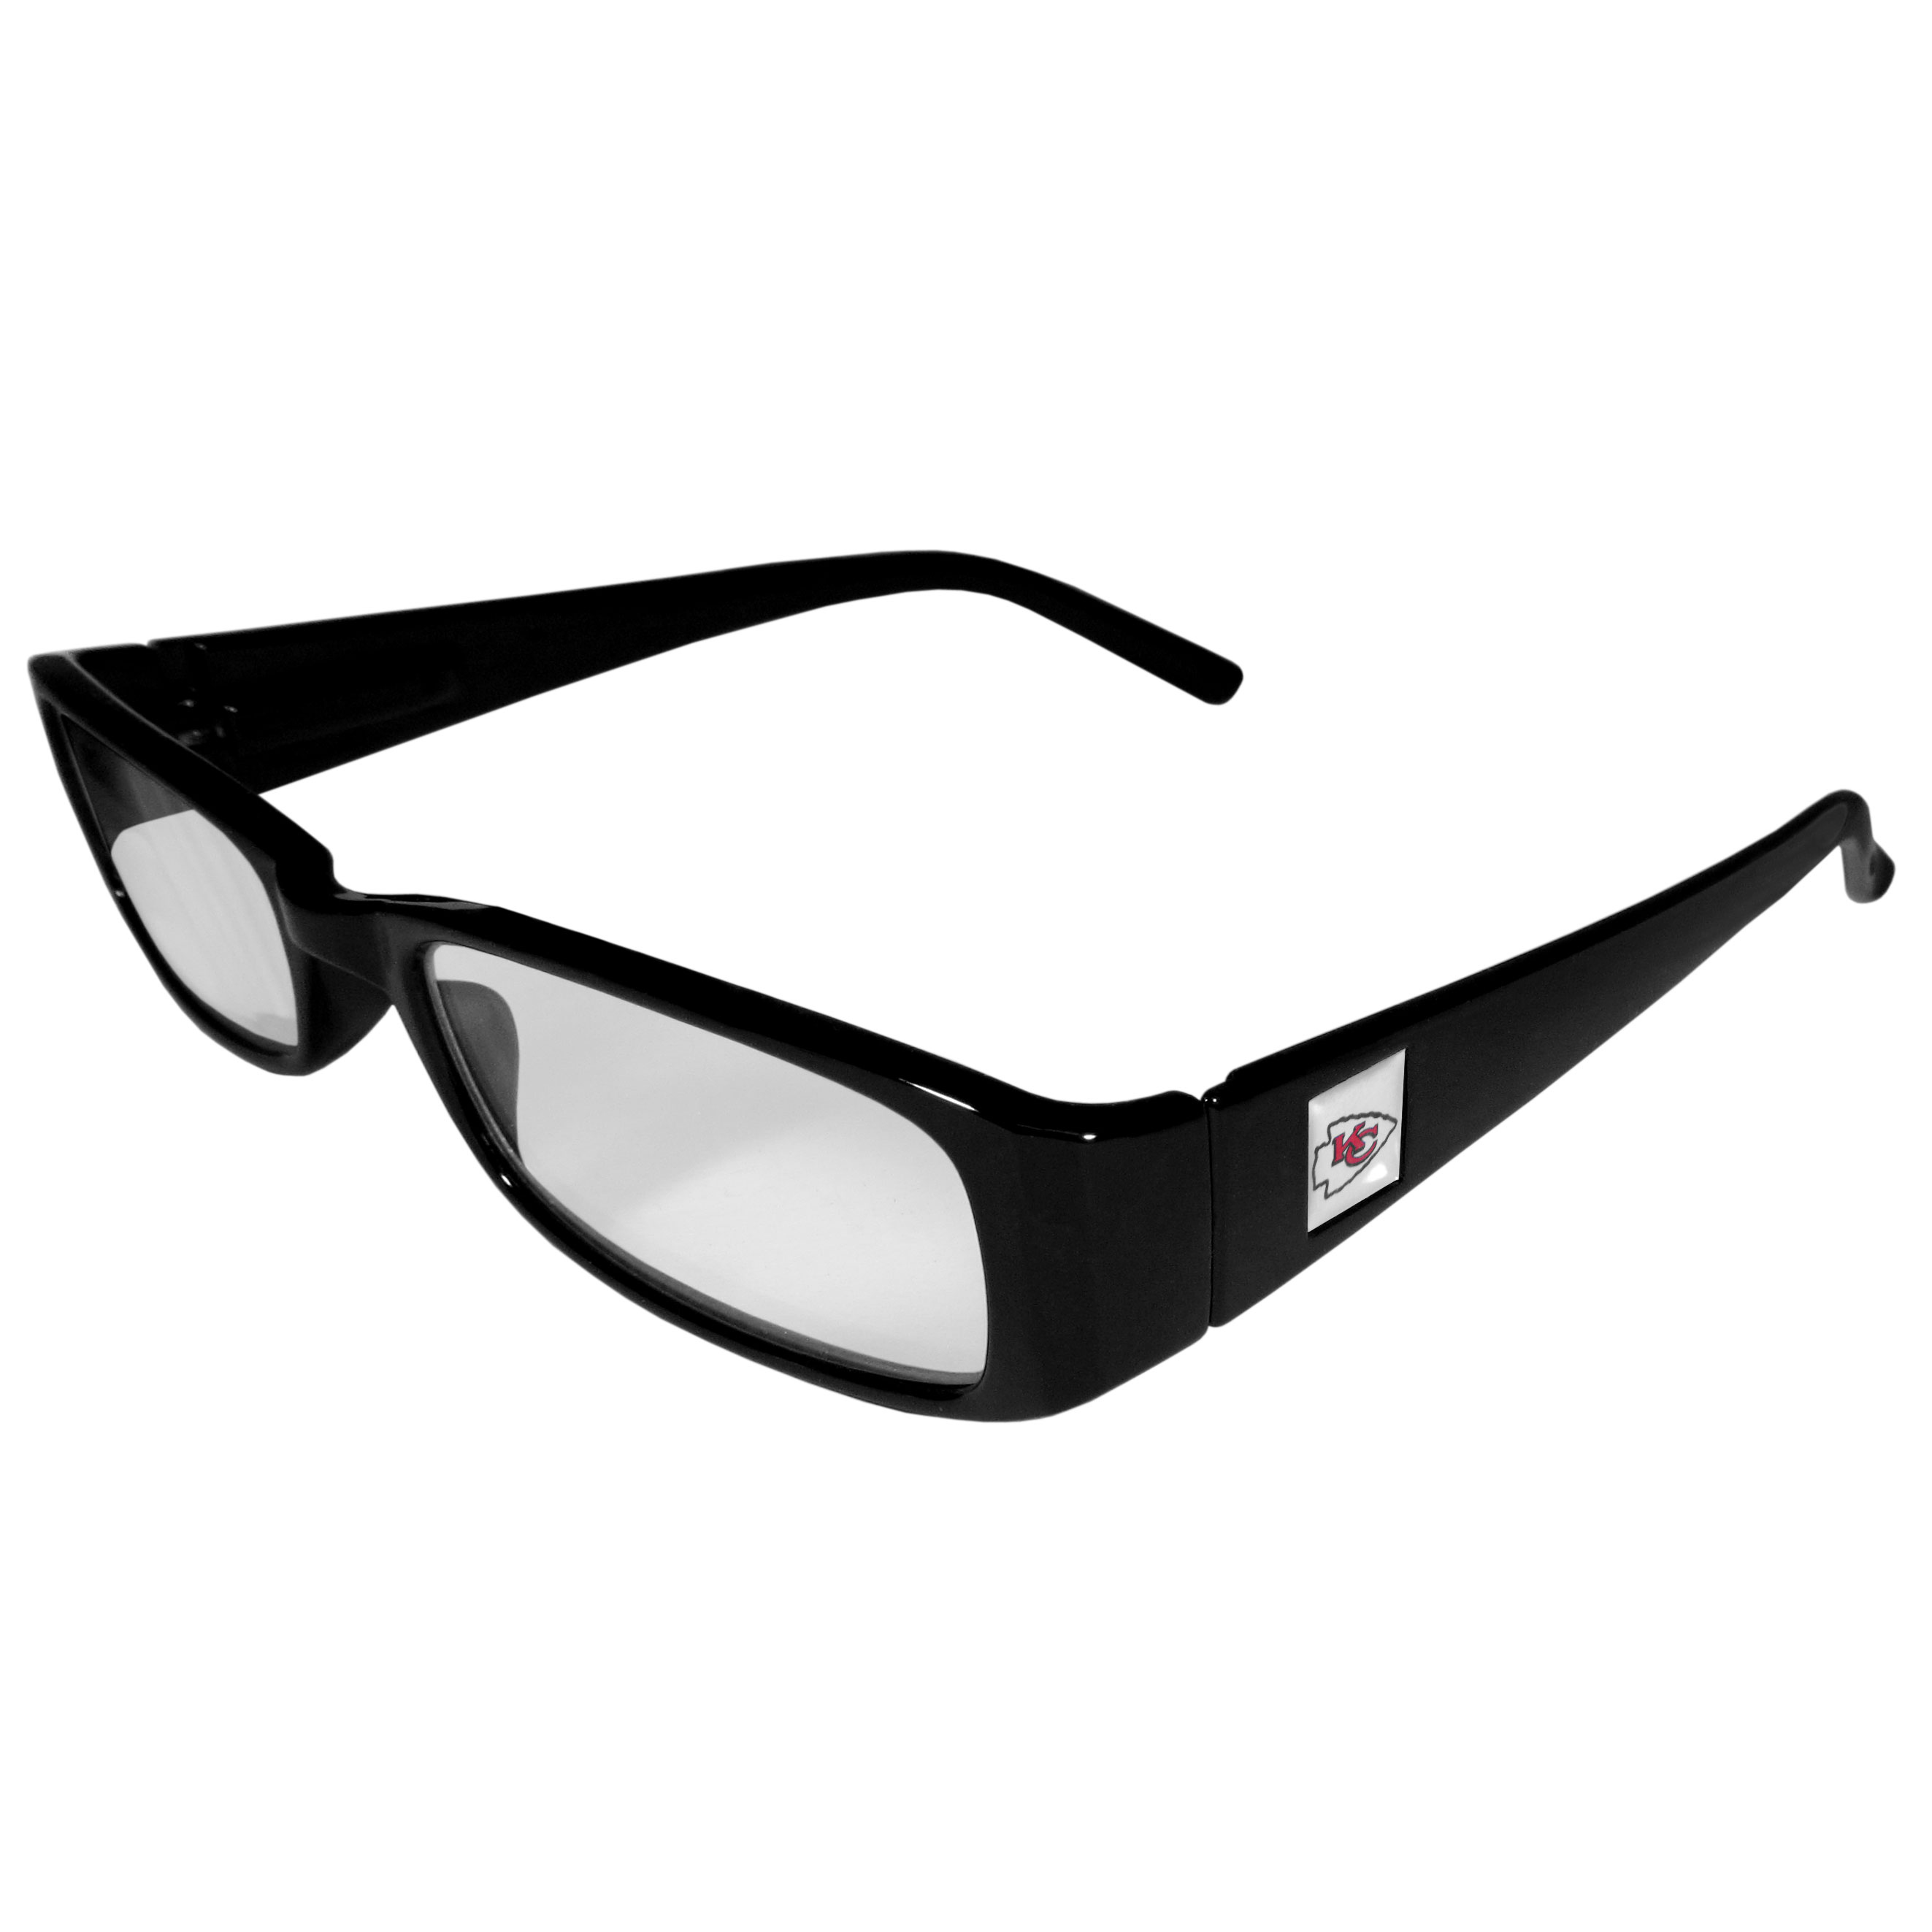 Kansas City Chiefs Black Reading Glasses +1.25 - Our Kansas City Chiefs reading glasses are 5.25 inches wide and feature the team logo on each arm. Magnification Power 1.25